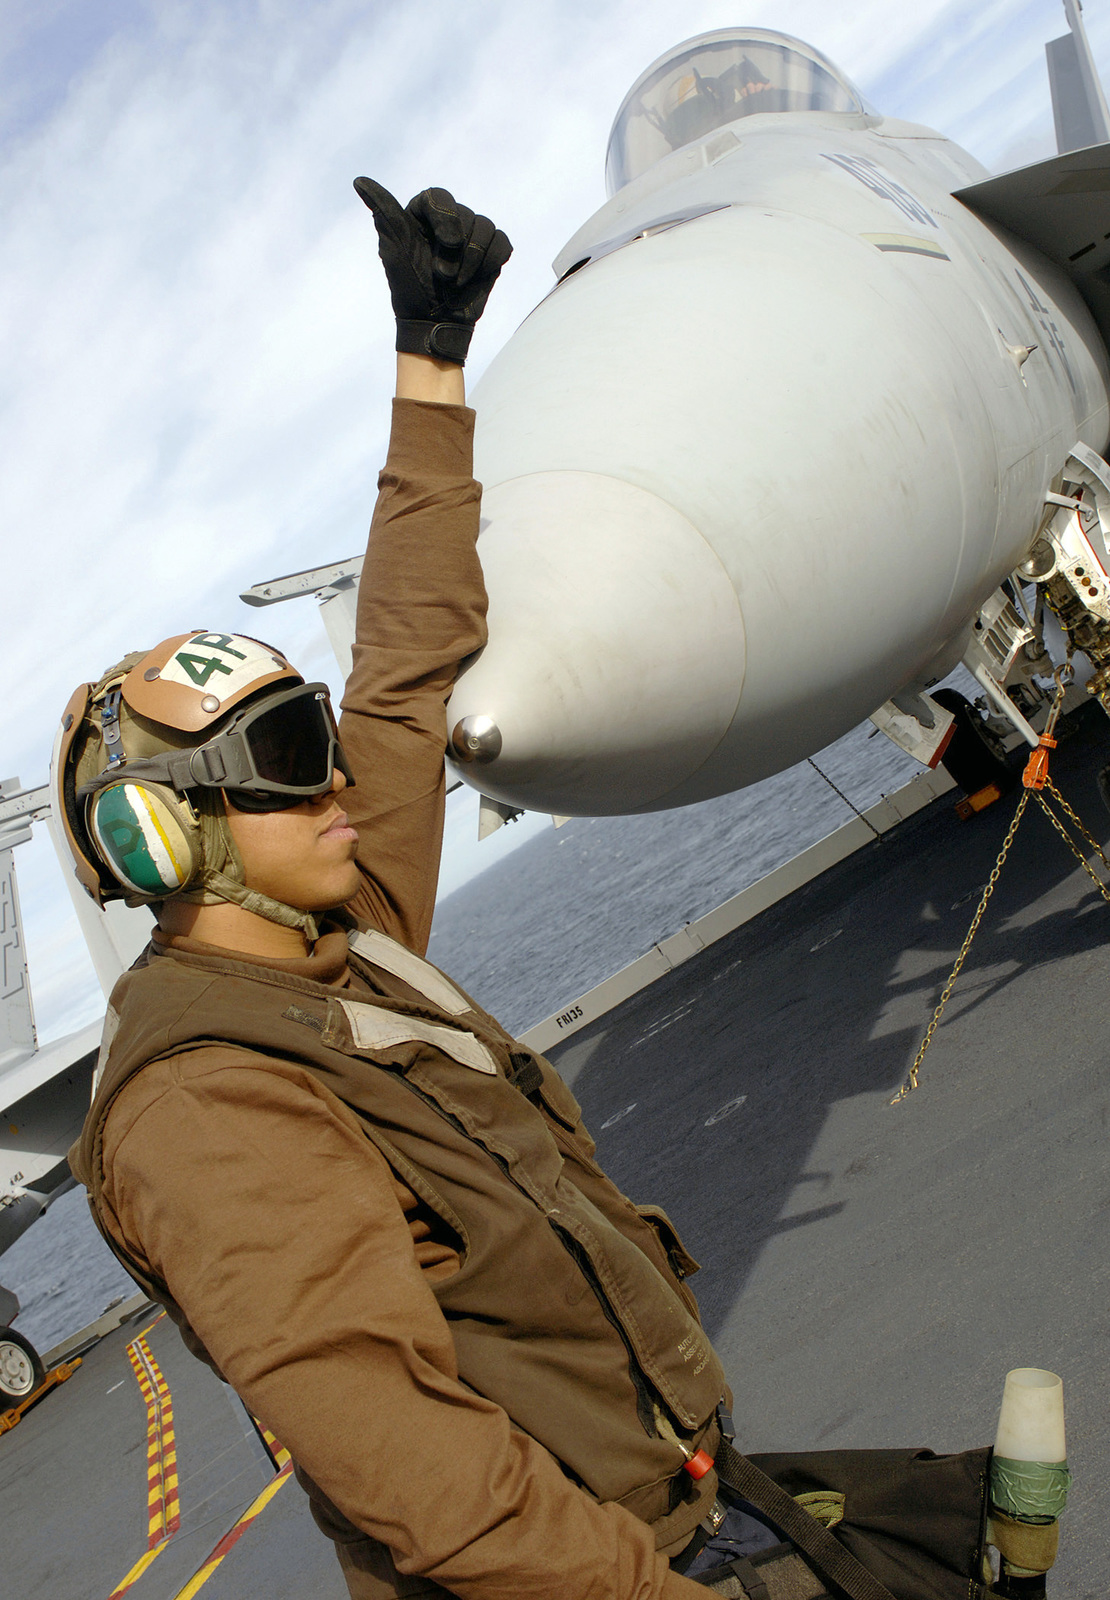 """A U.S. Navy Strike Fighter Squadron 105 (VFA-105,""""Gunslingers"""") Plane Captain gives the thumbs-up signal after completing pre-flight checks with one of his F/A-18E Super Hornet multi-mission fighter/attack aircraft pilots prior to afternoon flight operations on the flight deck of the Nimitz Class Aircraft Carrier USS HARRY S. TRUMAN (CVN 75), on Jan. 15, 2007, while the TRUMAN is currently underway conducting flight deck certifications off of the east coast in the Atlantic Ocean. (U.S. Navy photo by Mass Communication SPECIALIST 3rd Class Kristopher Wilson) (Released)"""